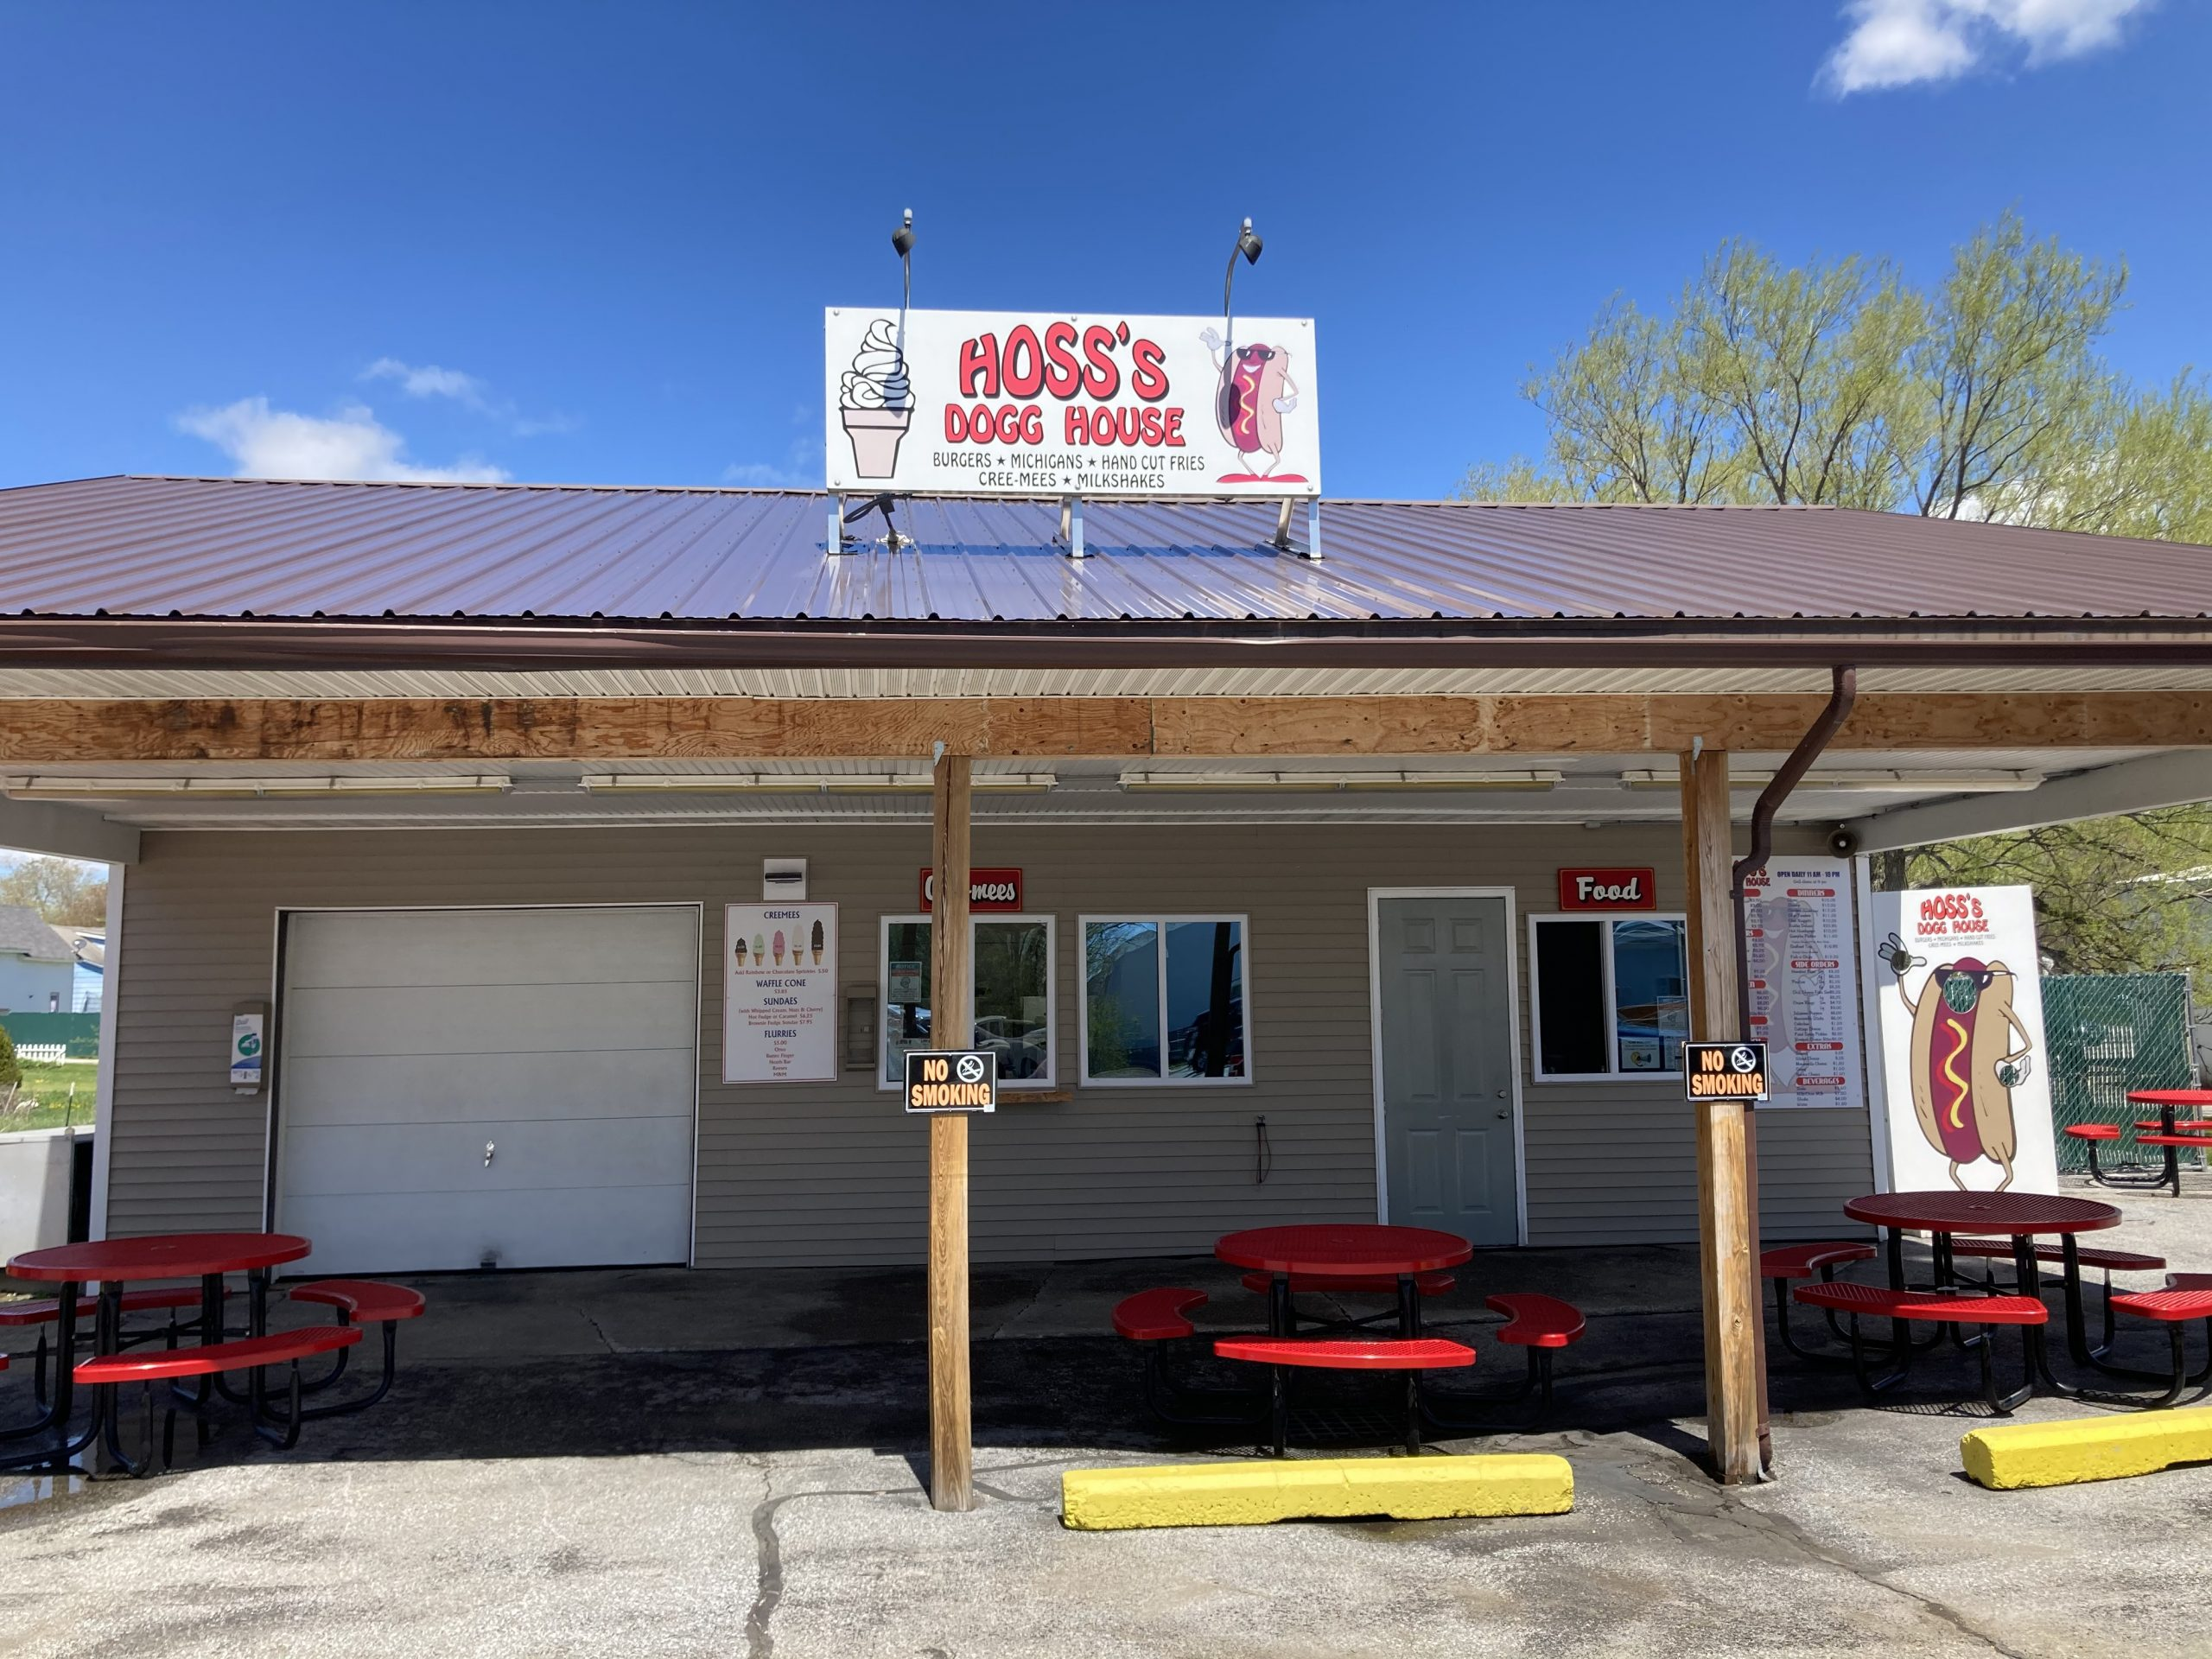 Hoss's Dogg House is now open